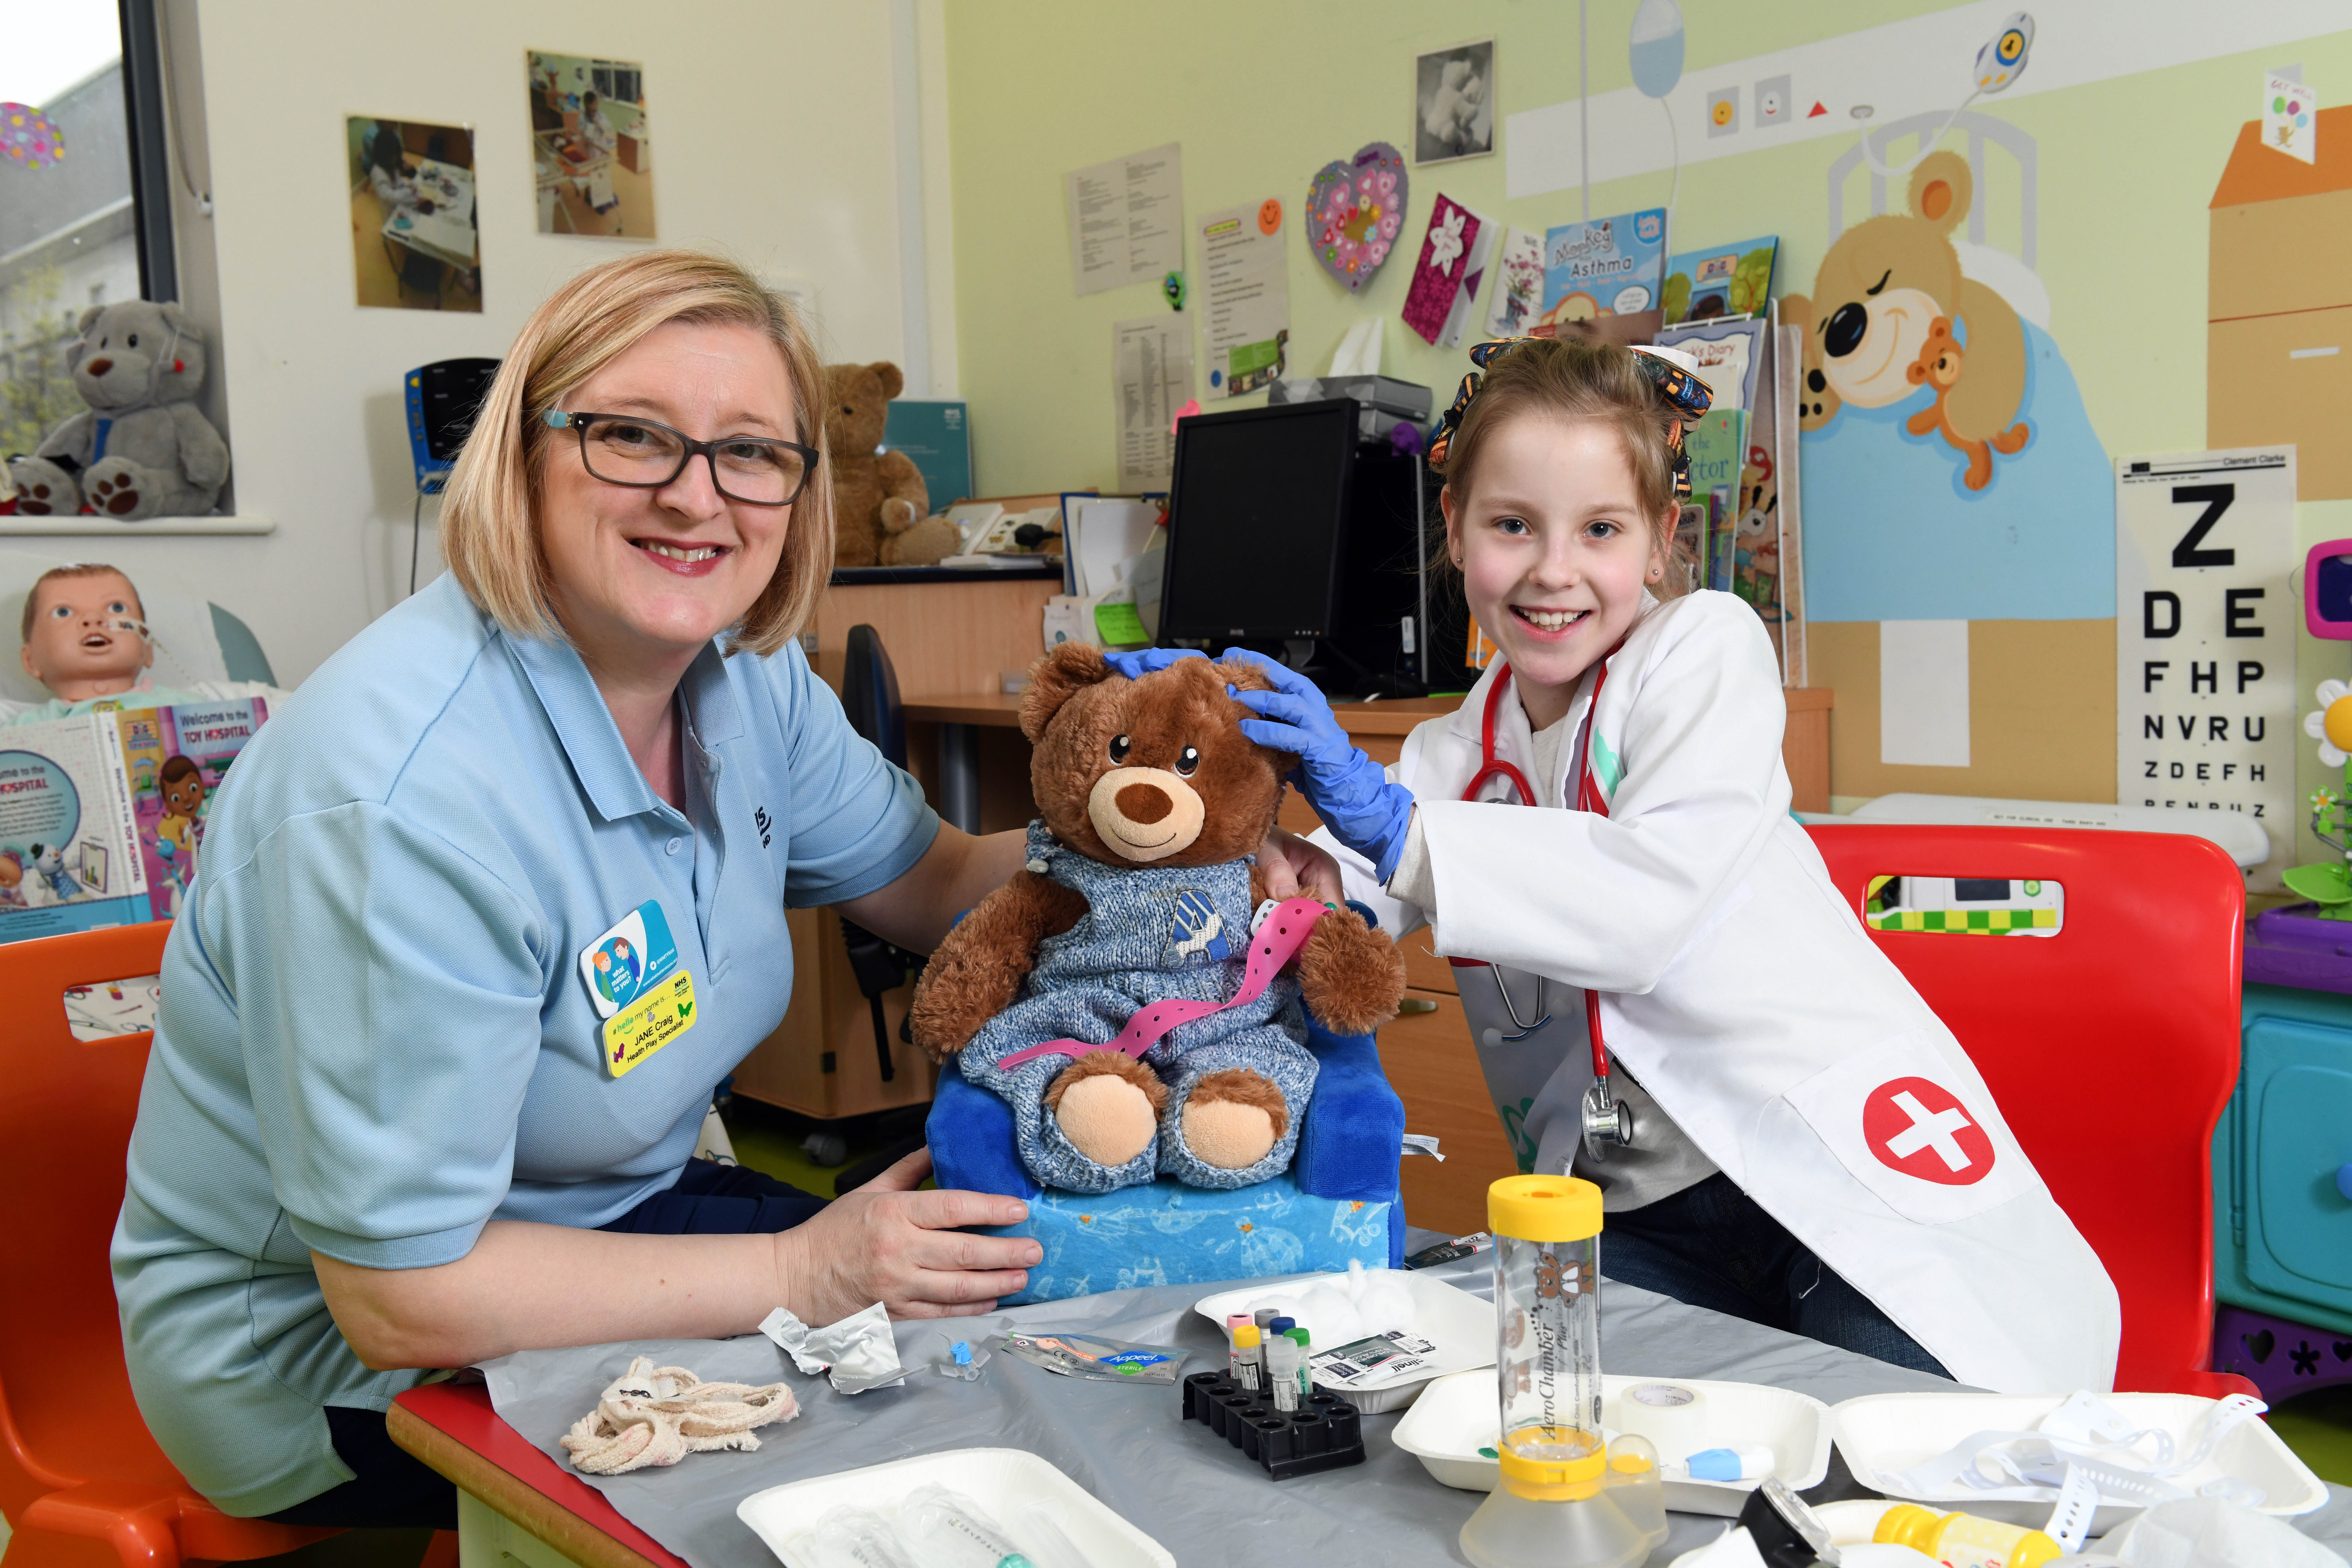 Pictured is Hayley Pollock aged 10 with nurse Jane Craig in the Teddy Hospital at the Royal hospital for sick children in Glasgow.